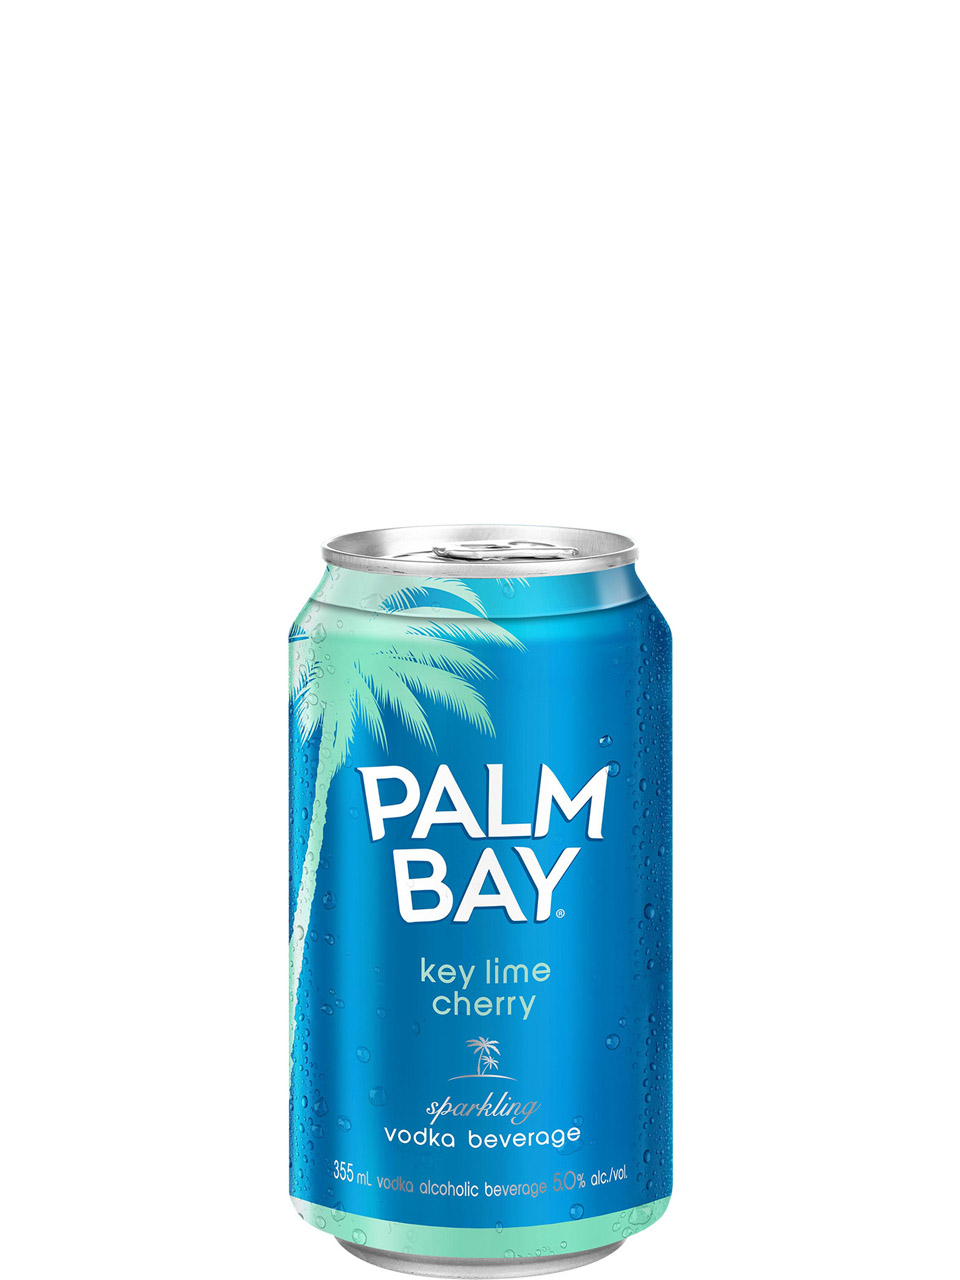 Palm Bay Key Lime Cherry 6 Pack Cans